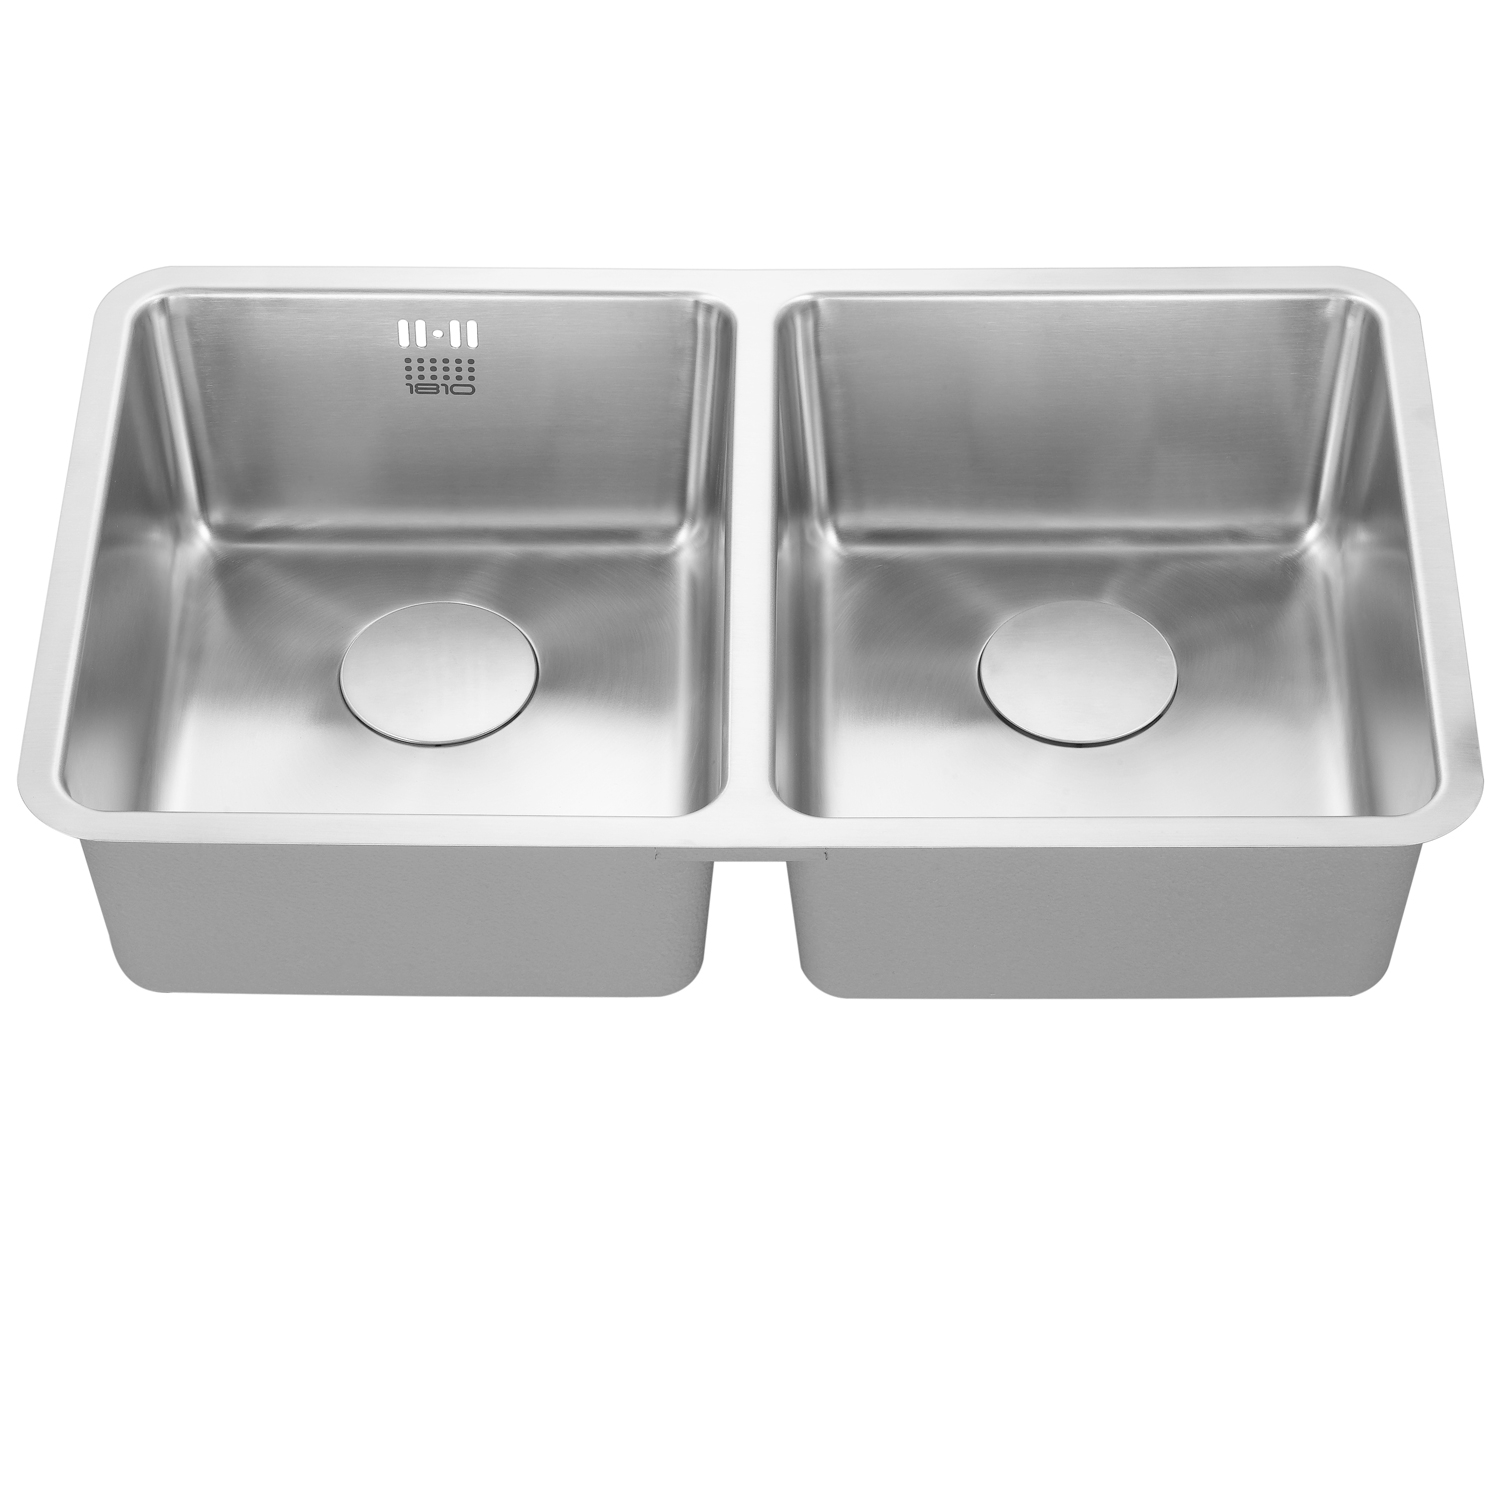 The 1810 Company Luxsoduo25 340/340U 2.0 Bowl Kitchen Sink - Stainless Steel